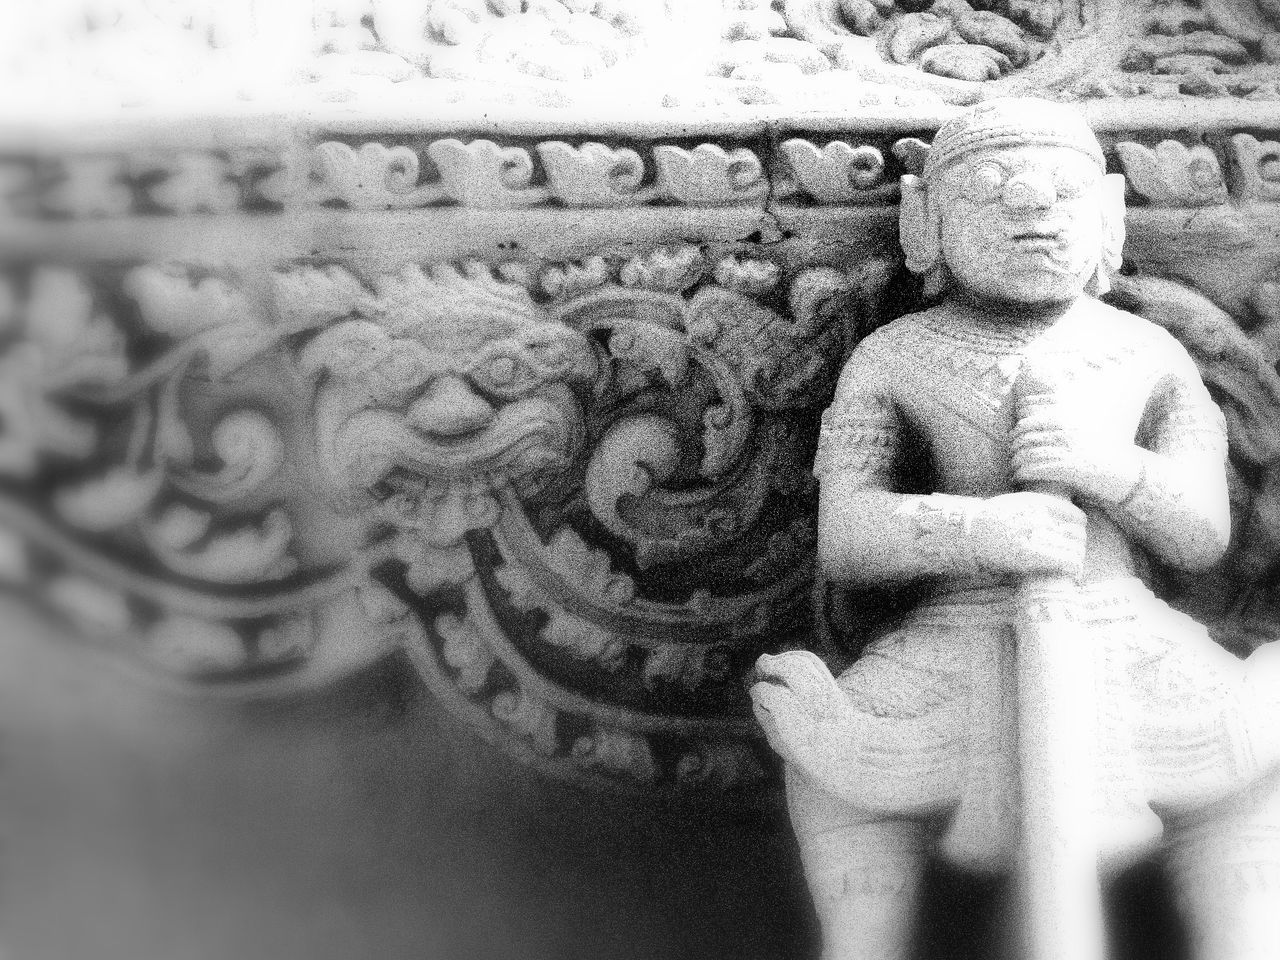 representation, art and craft, sculpture, creativity, statue, human representation, no people, male likeness, craft, architecture, religion, spirituality, carving - craft product, belief, close-up, place of worship, day, selective focus, pattern, building, ornate, carving, floral pattern